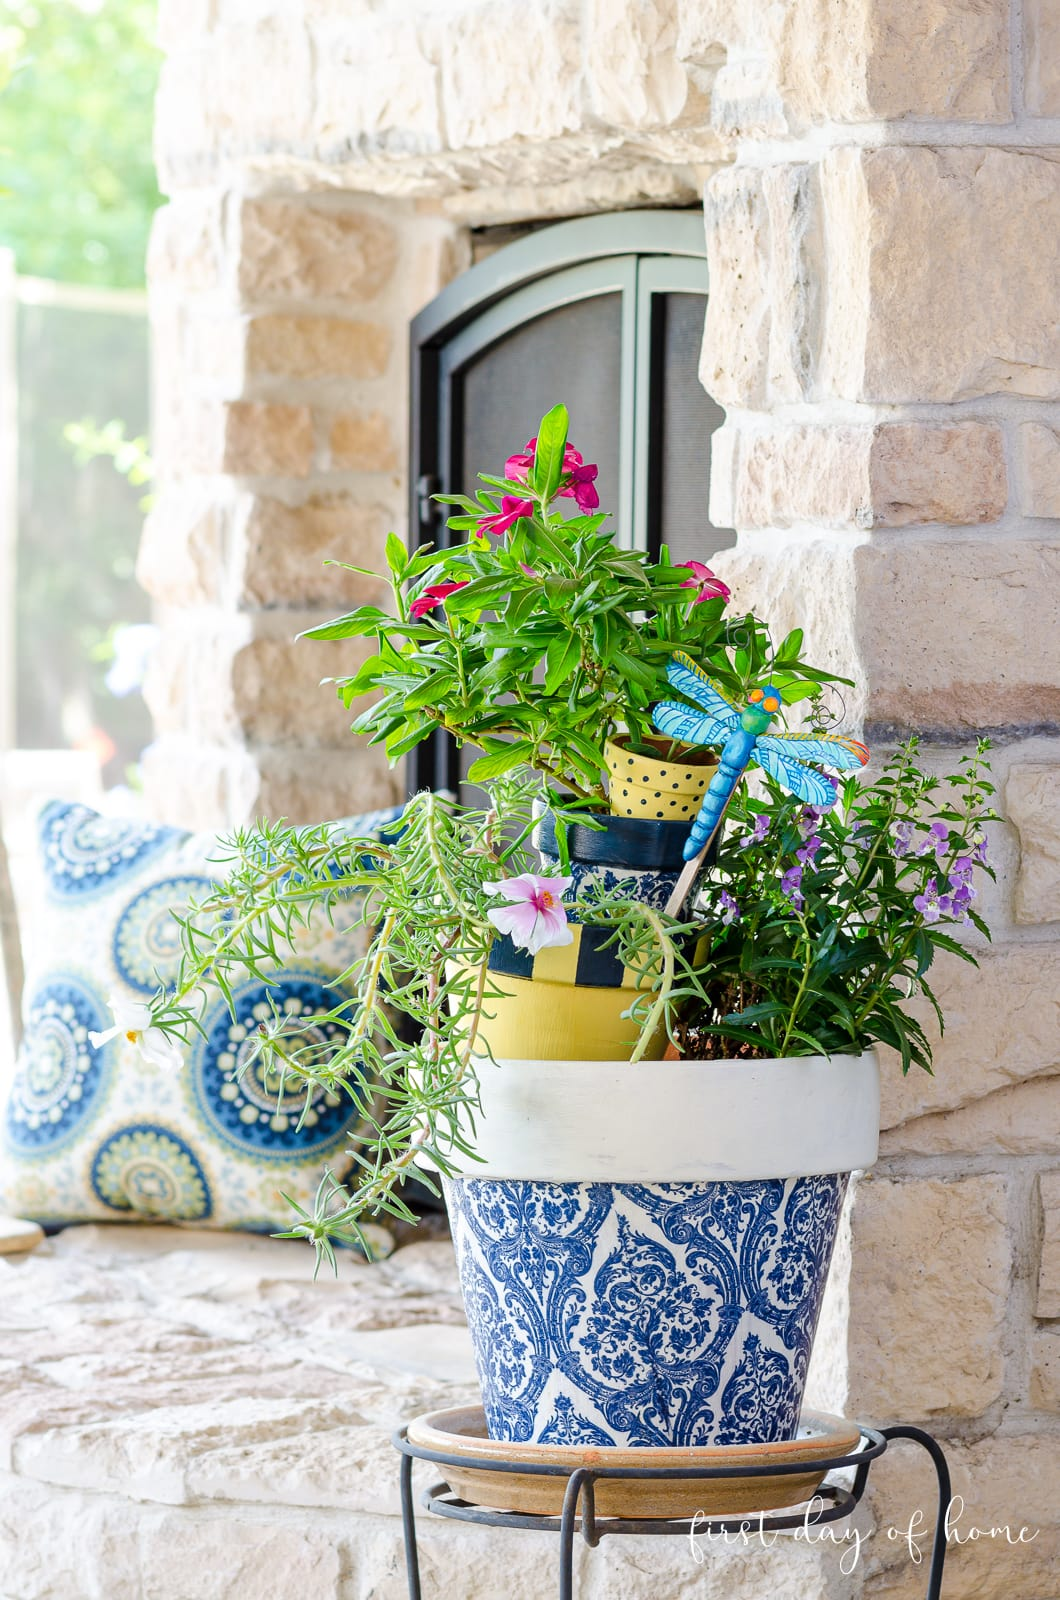 Decorating planters with napkins